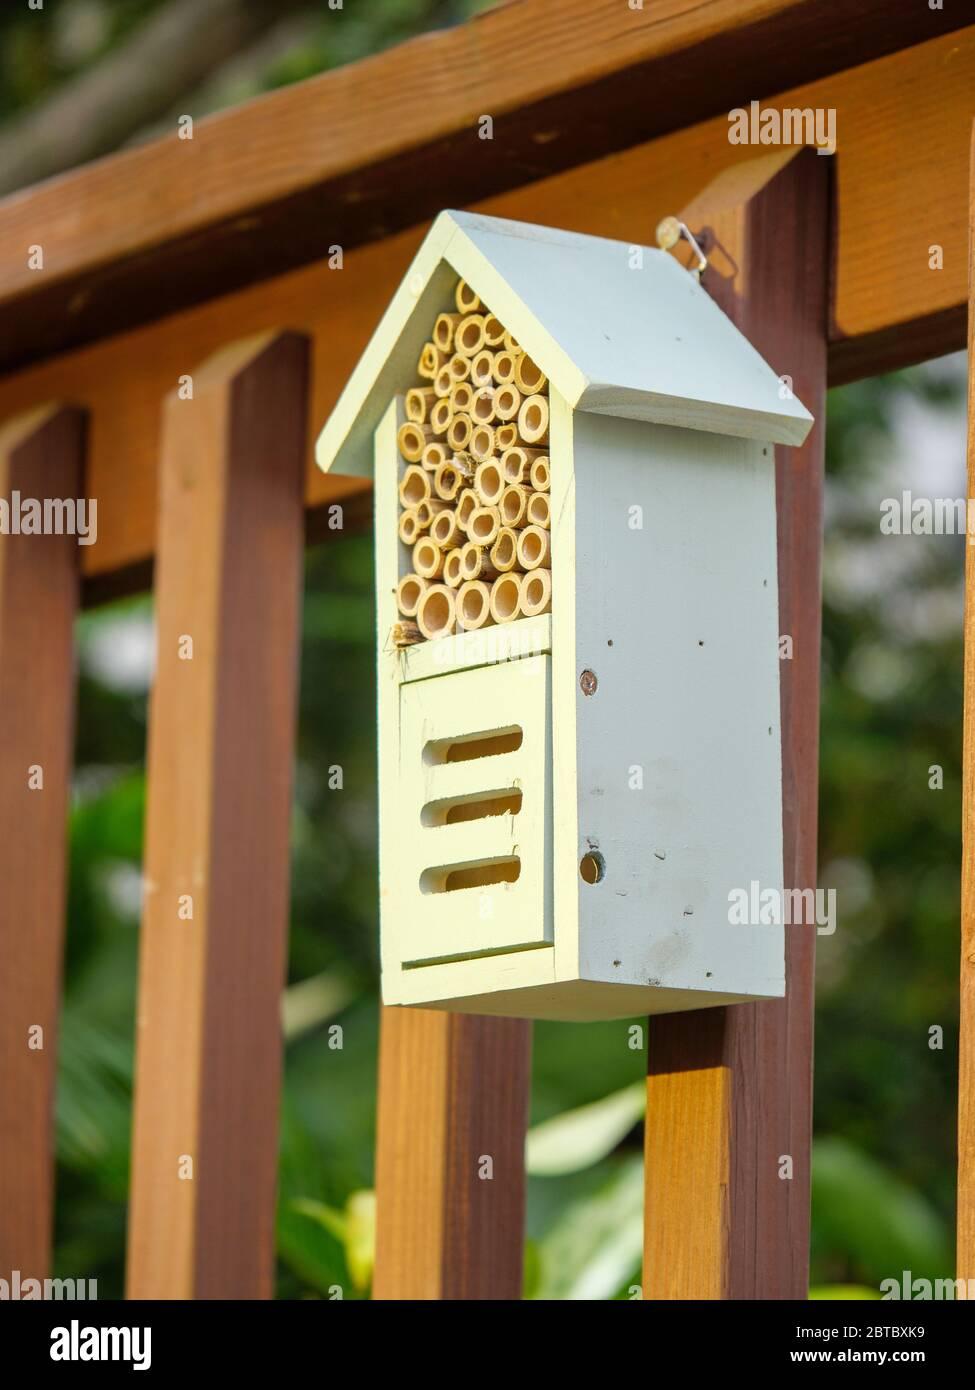 Bee and pollinator house. Provides nesting cavities for solitary bees and hiding place for polllinators. Stock Photo